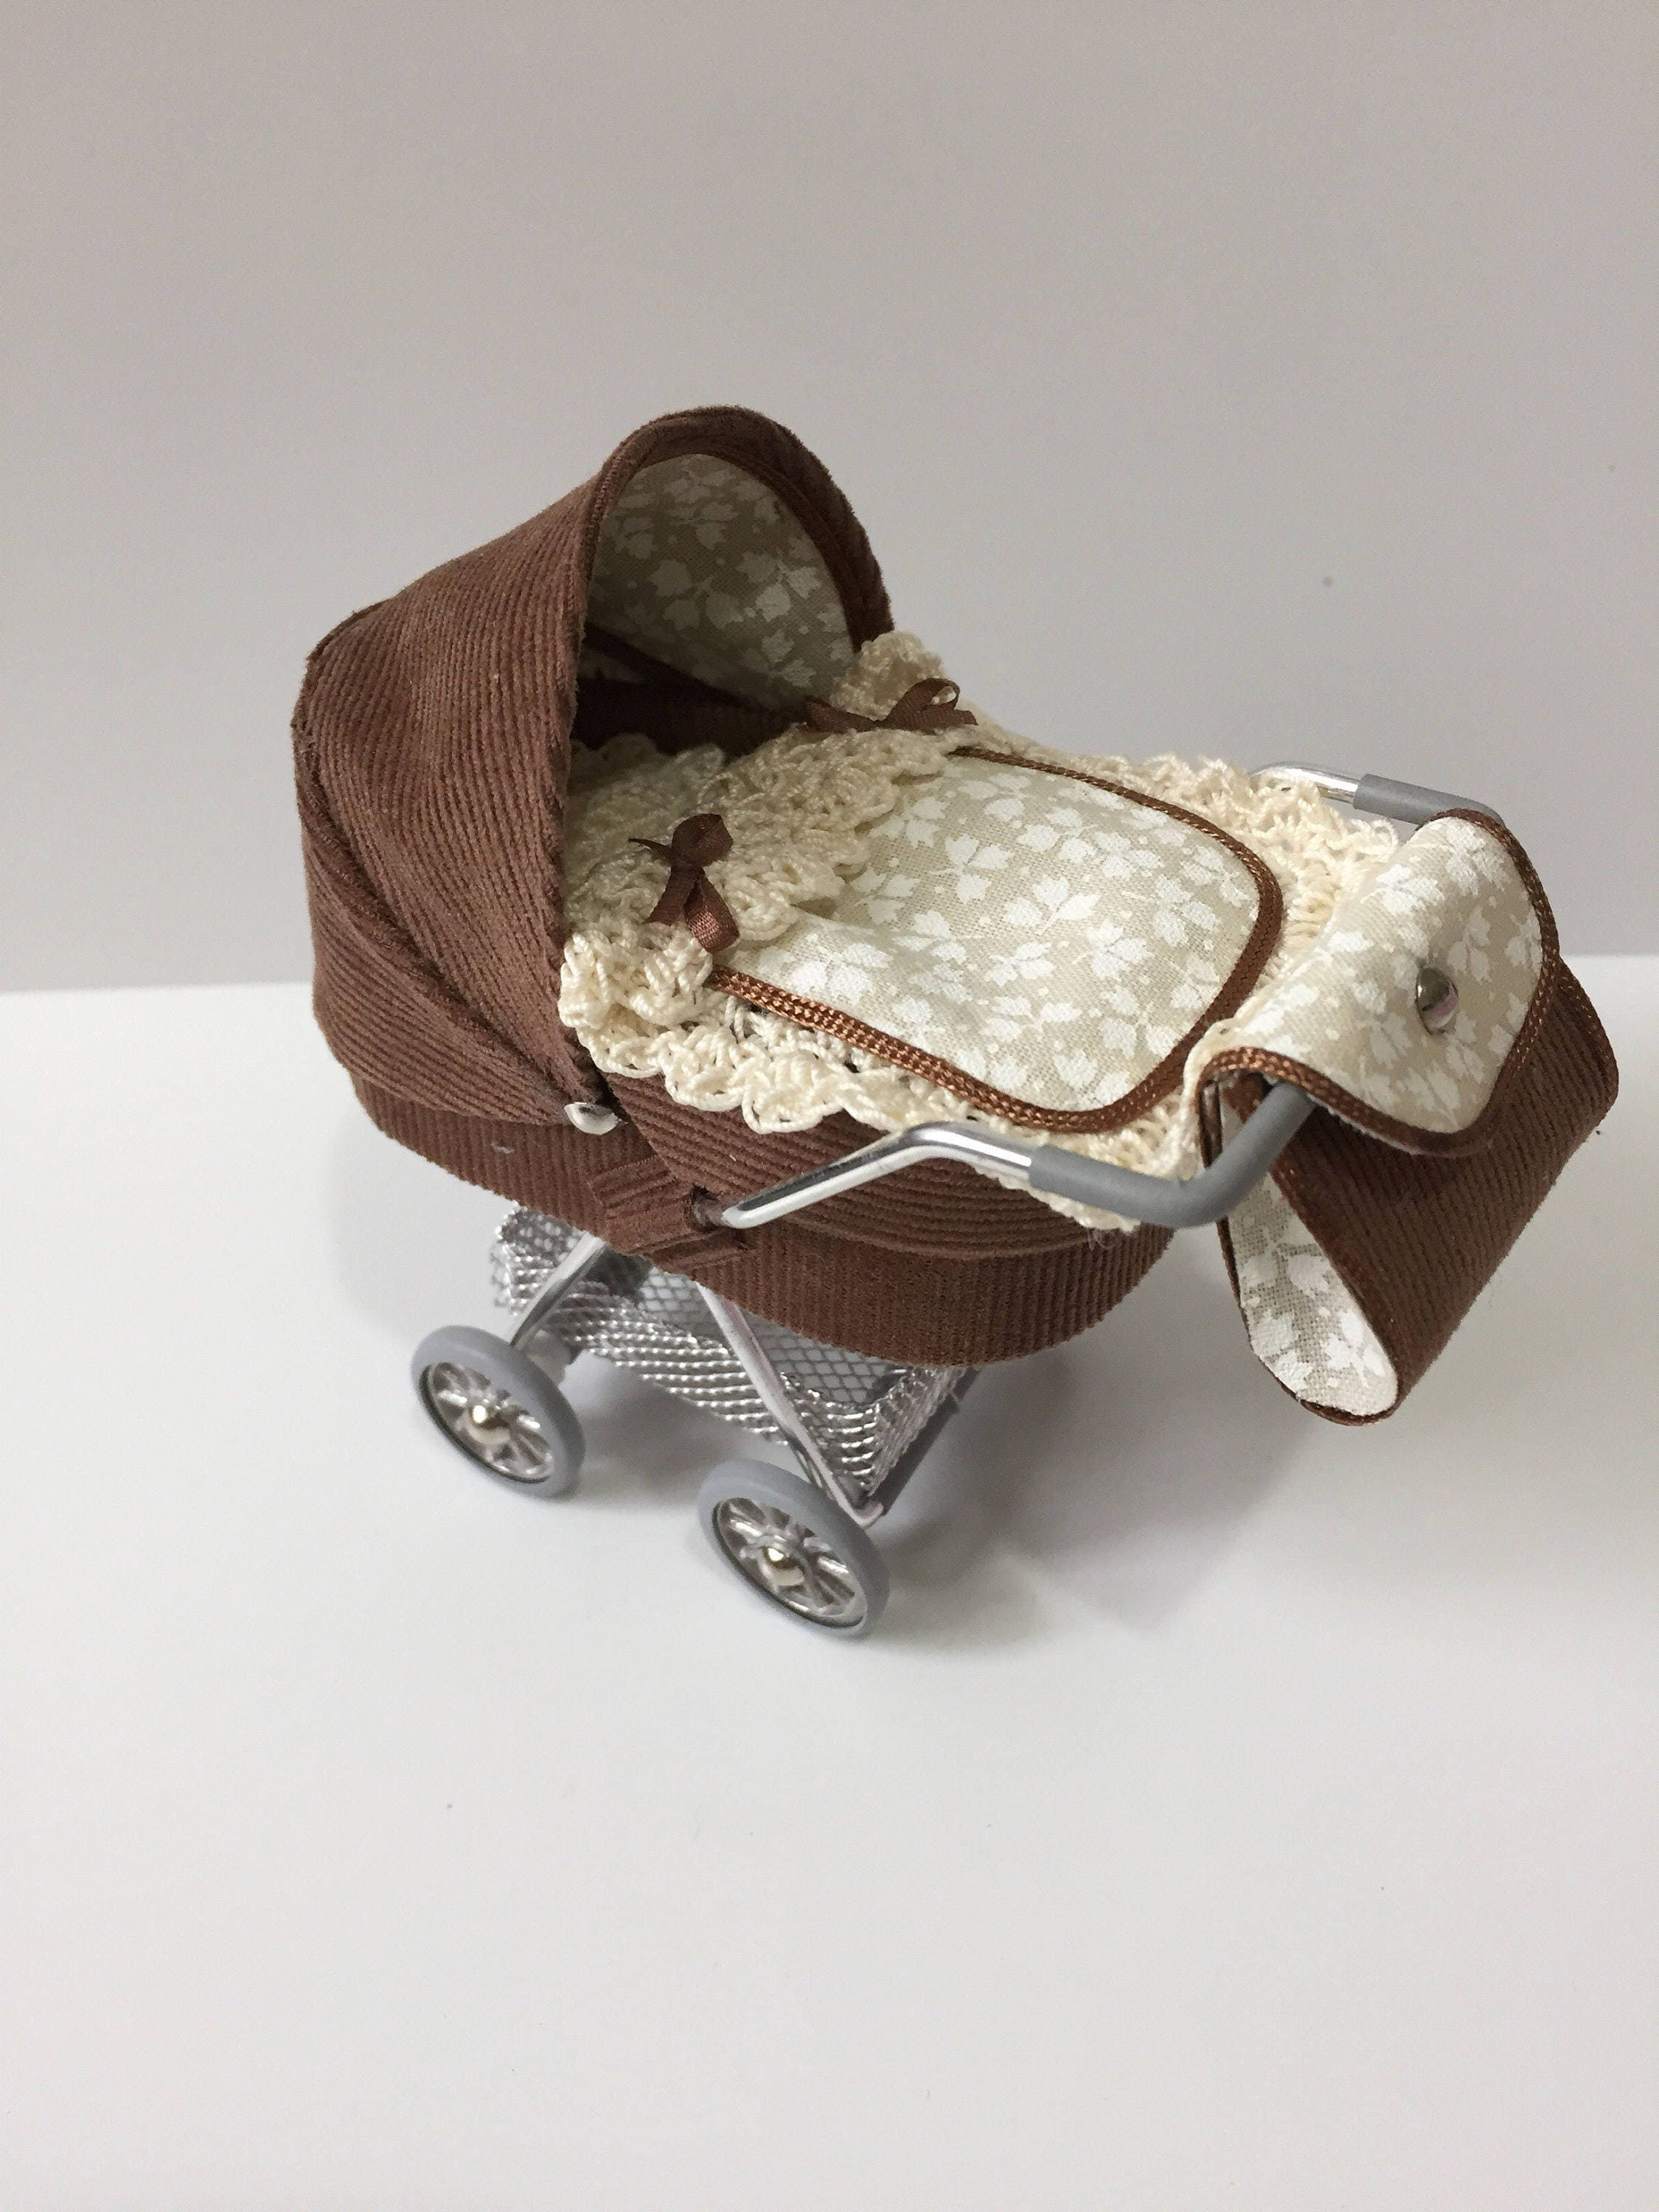 DOLLS HOUSE 112th scale modern dolls house pramstrollerbuggy in brown and cream